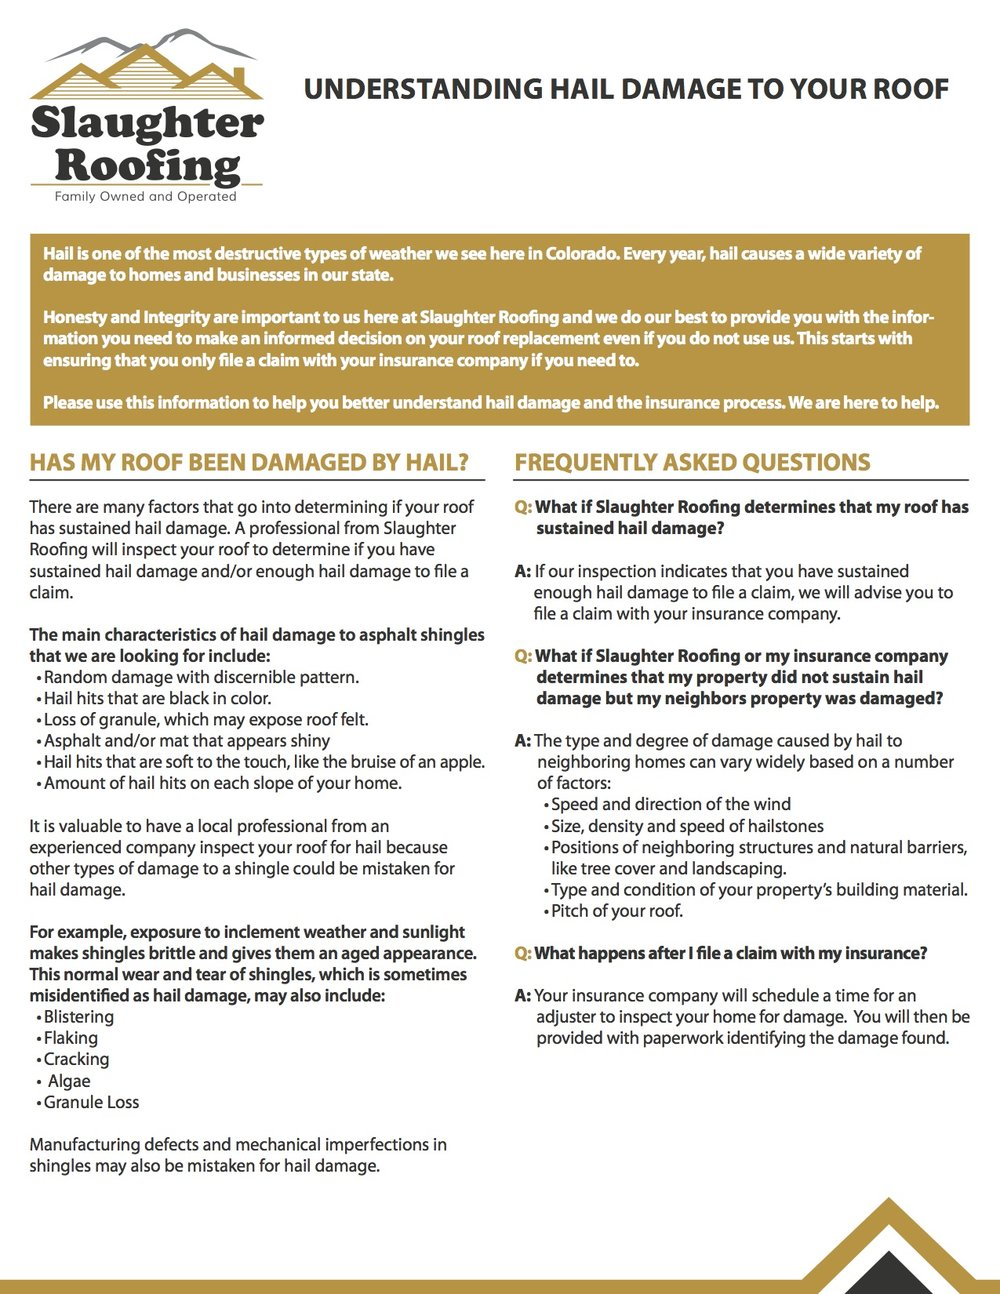 Understanding Hail Damage to Your Roof.jpg